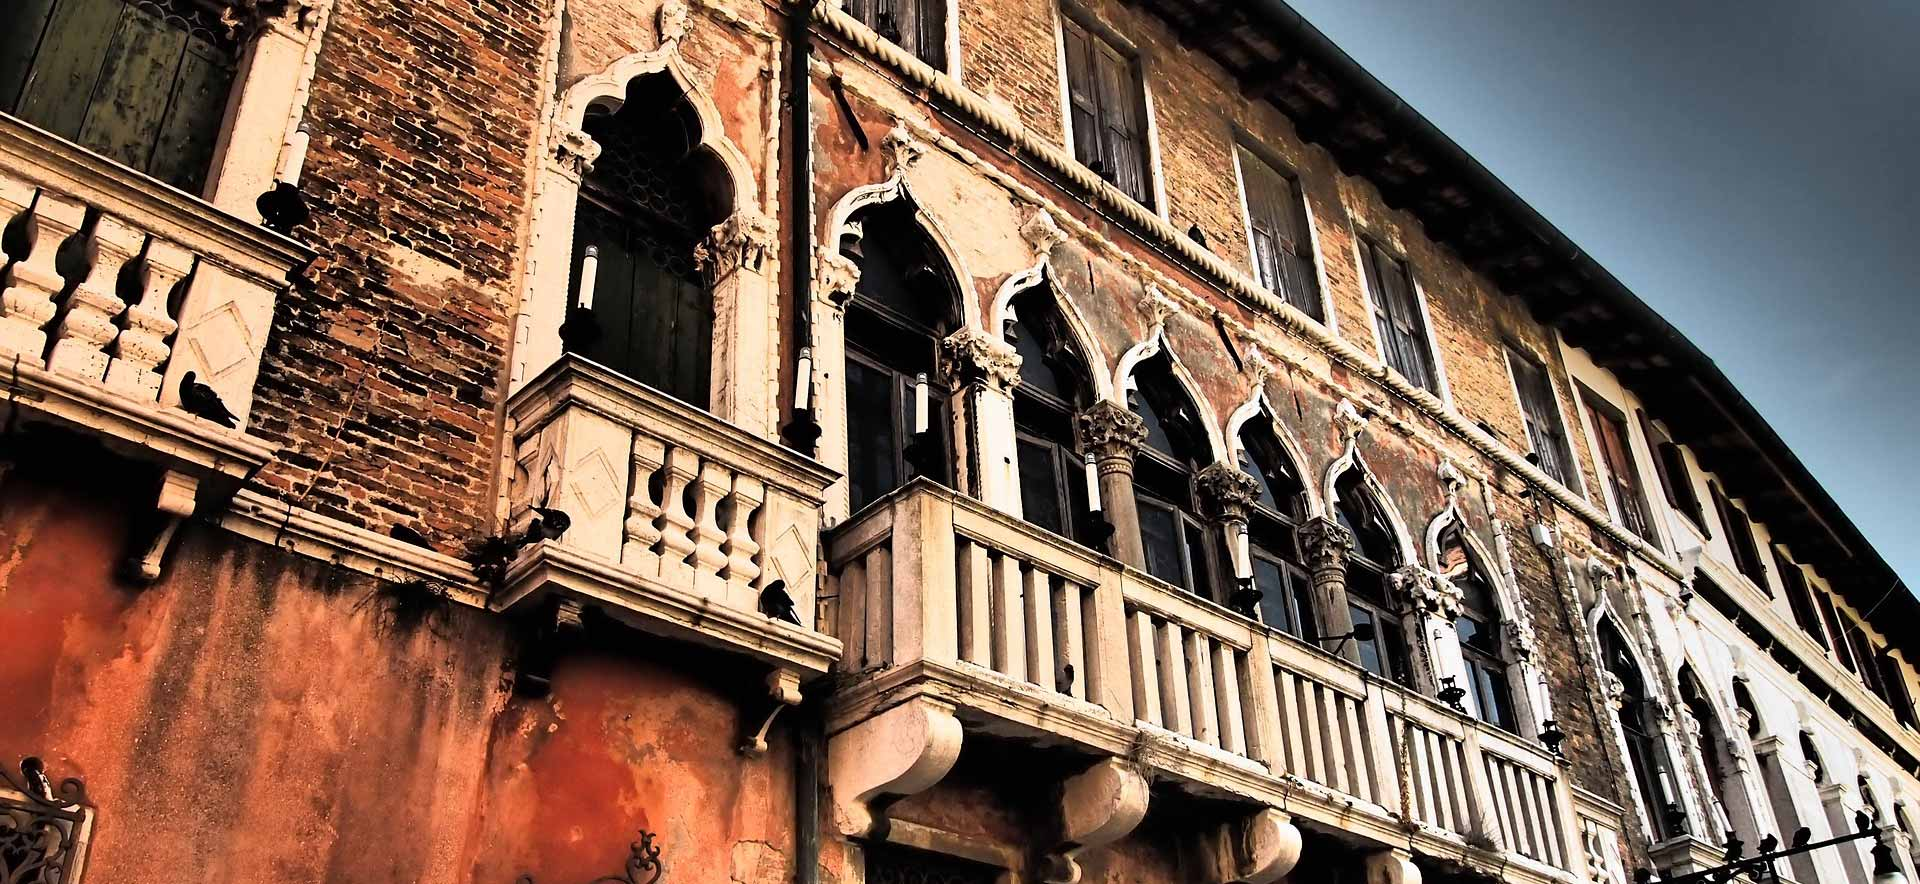 Appartamenti - Venice Dream House Apartments